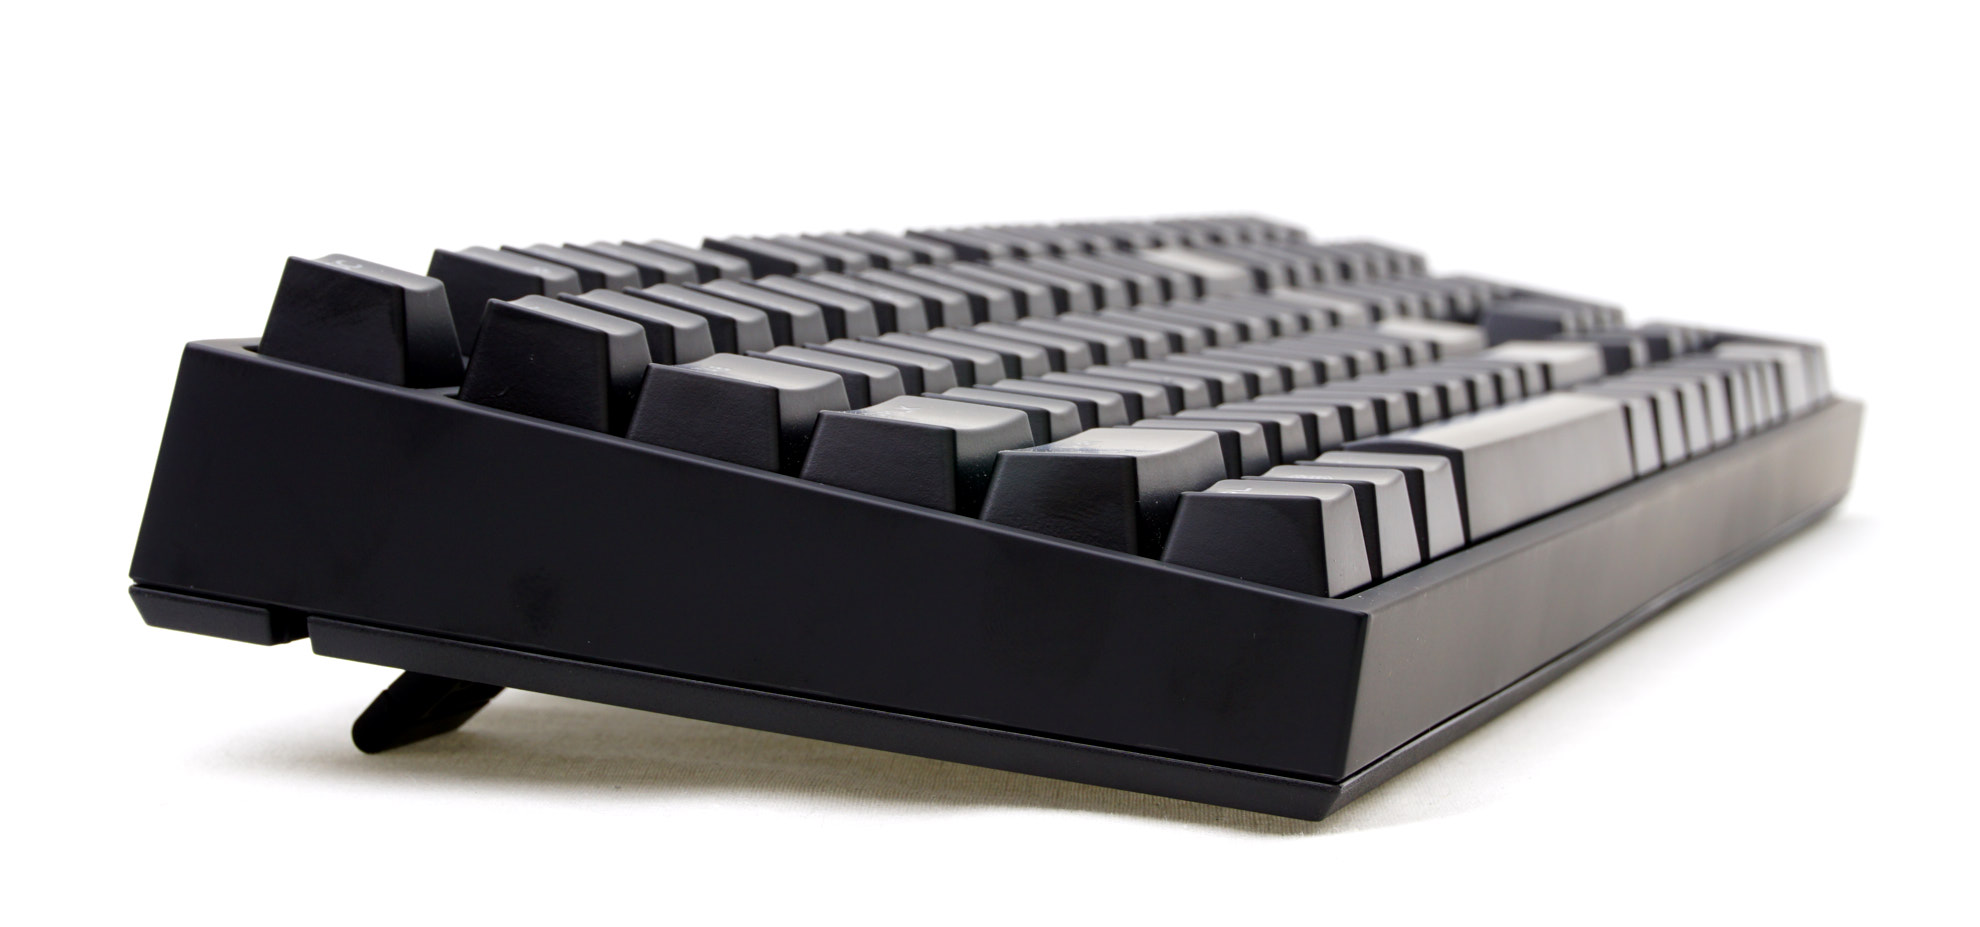 The Cooler Master Master Keys Pro L White Mechanical Keyboard Review